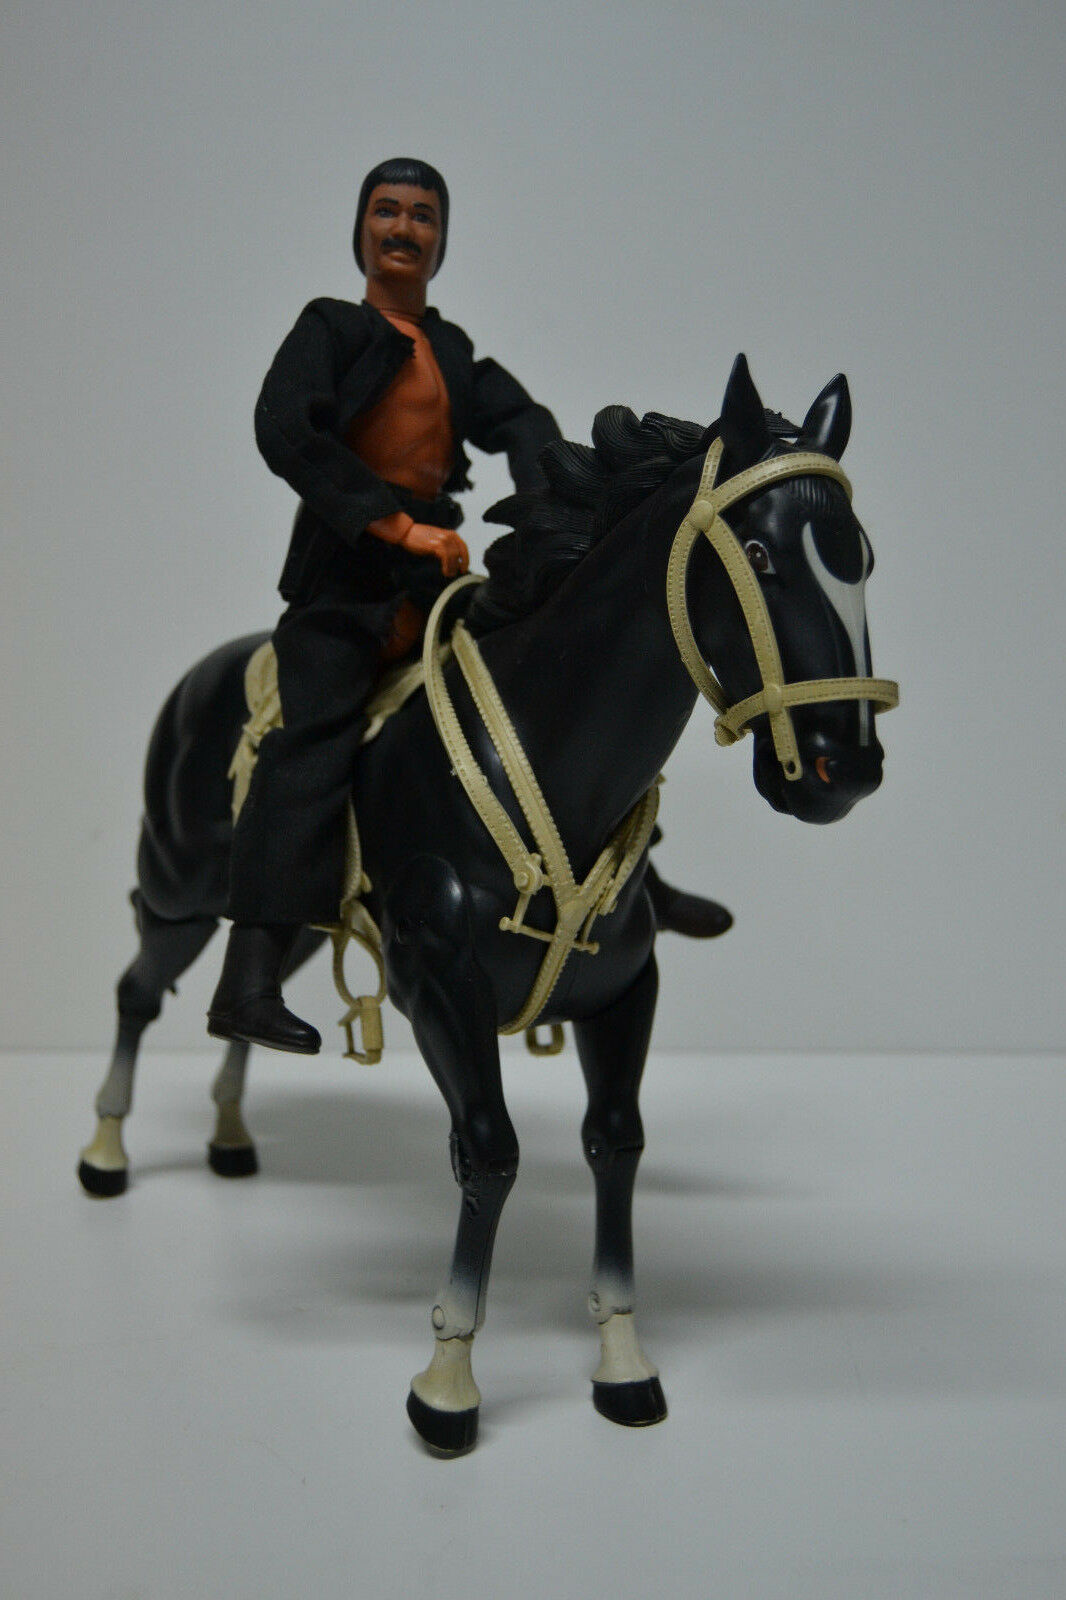 Figuras Caballo y Butch Cavendish - Lone Ranger 1973 - Made in Hong Kong